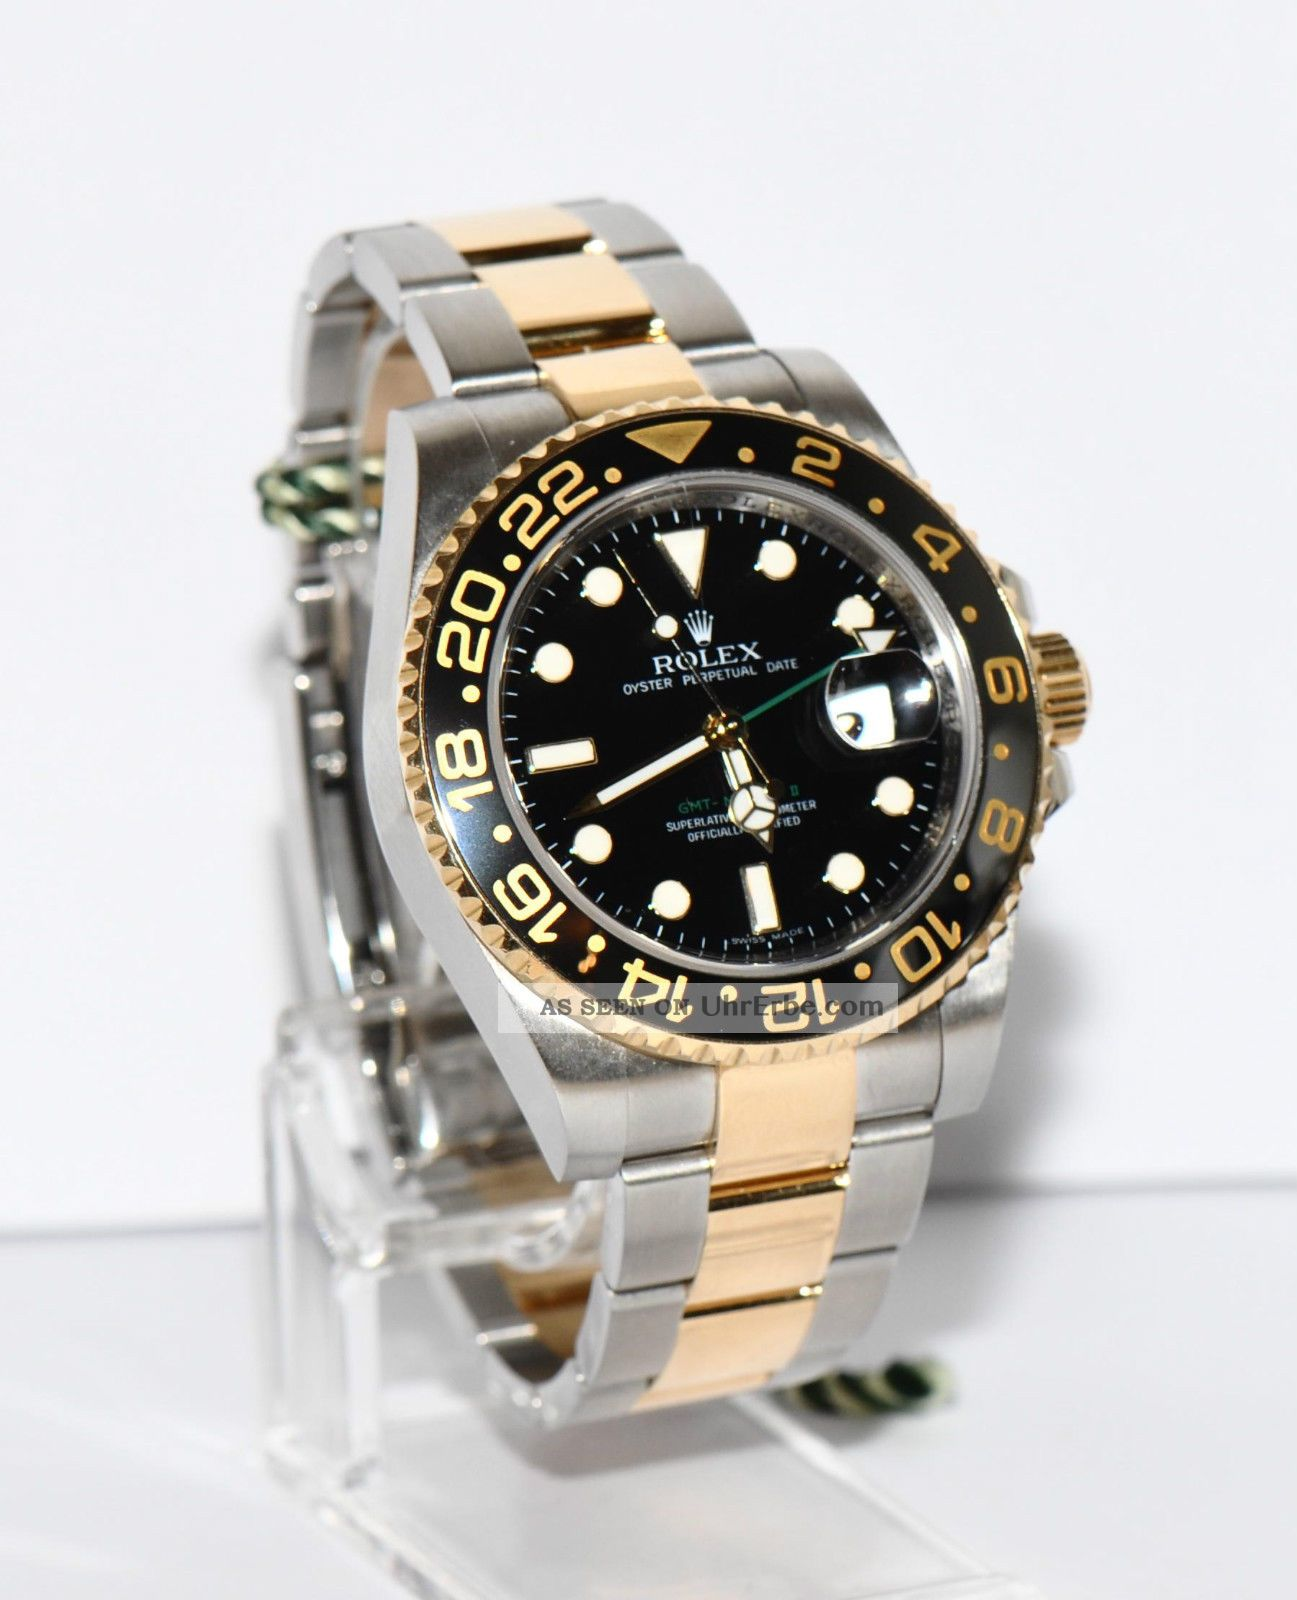 rolex gmt master ii stahl gold keramik 116713 papiere box 2006. Black Bedroom Furniture Sets. Home Design Ideas